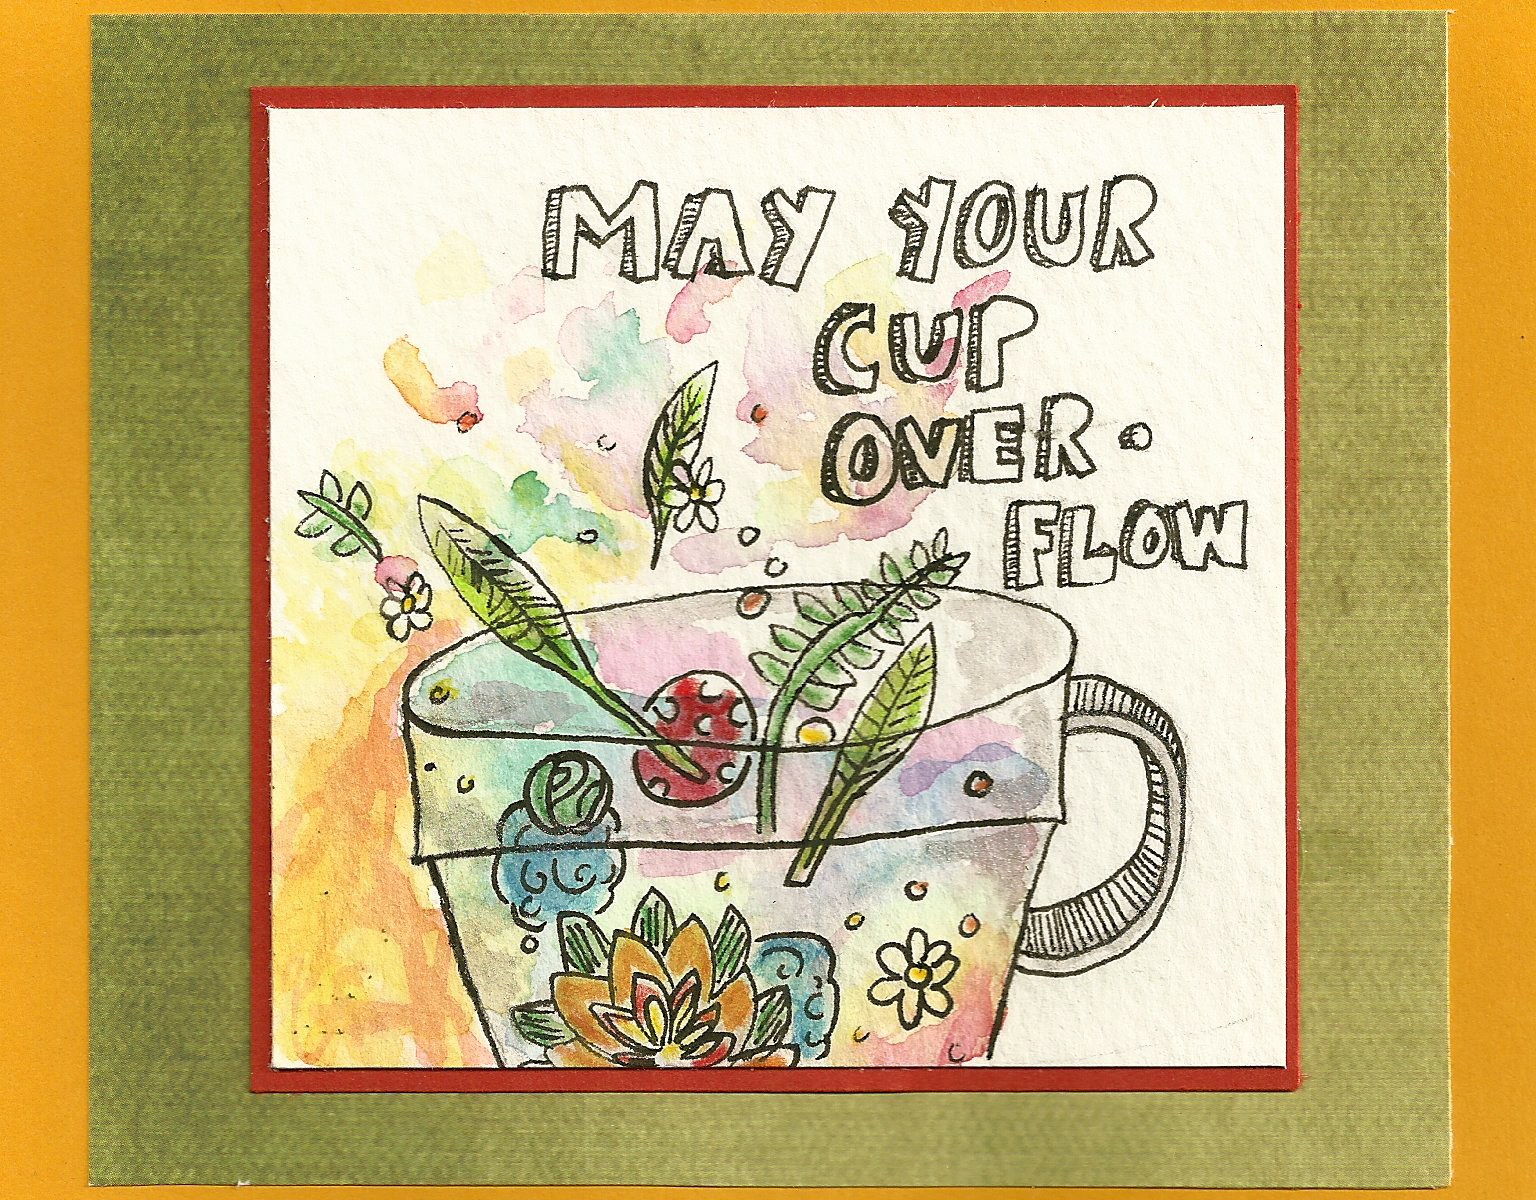 Debbie Dots Greeting Card Blog Full Cup Birthday